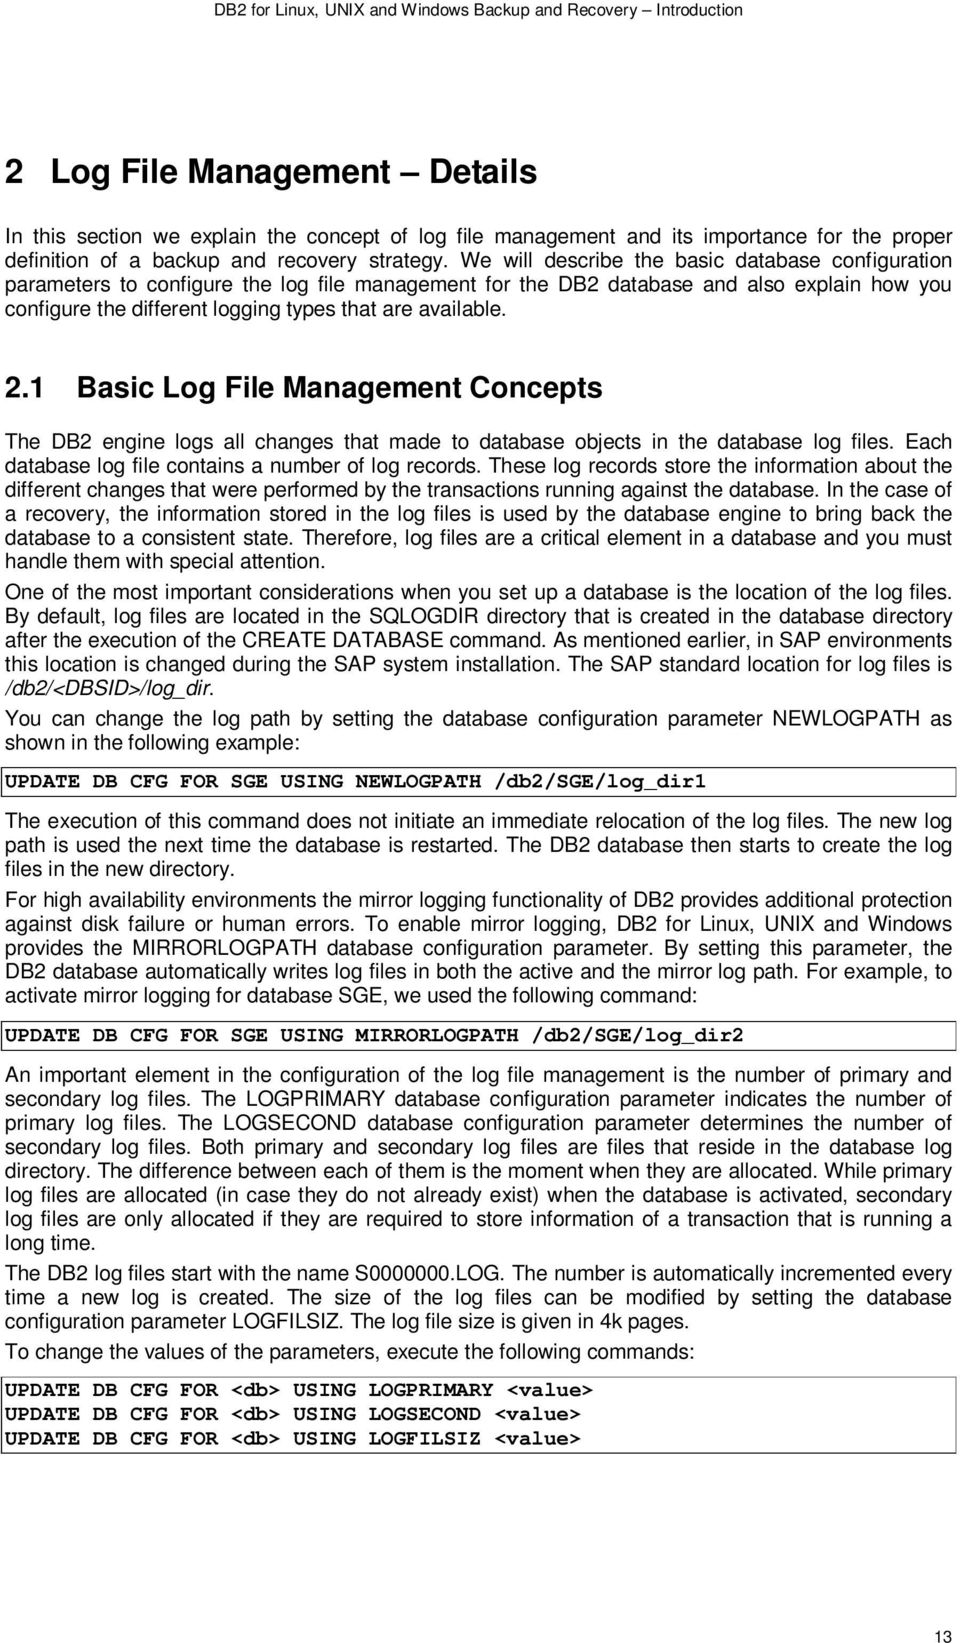 available. 2.1 Basic Log File Management Concepts The DB2 engine logs all changes that made to database objects in the database log files. Each database log file contains a number of log records.